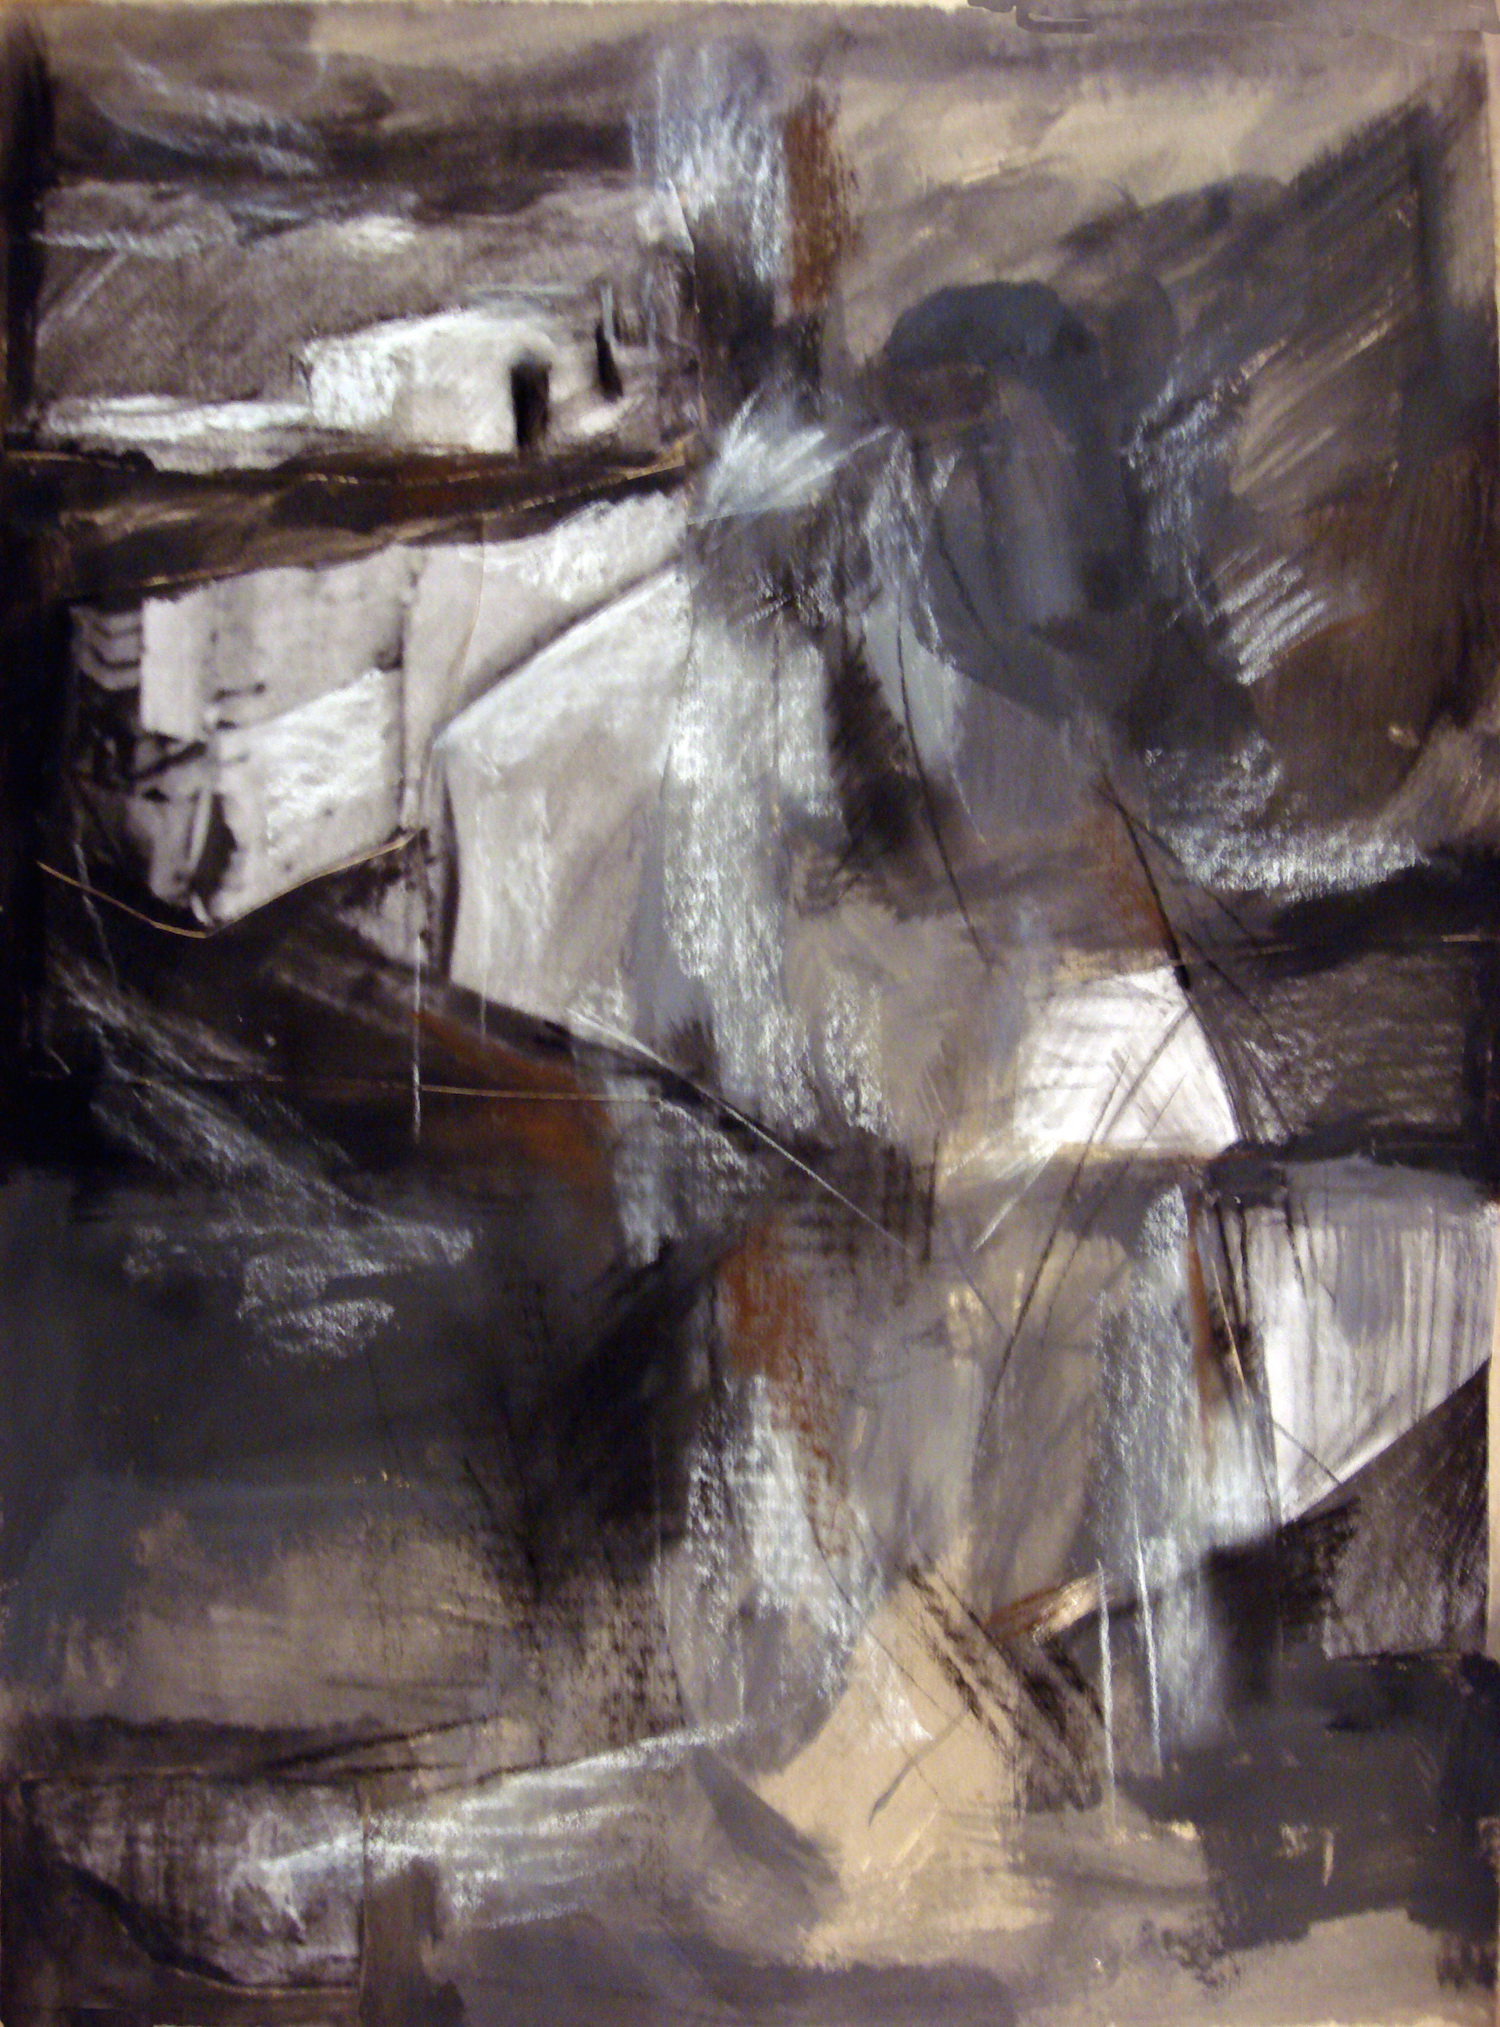 Untitled #32, acrylic & pastel on paper, 39x31 inches, 2009